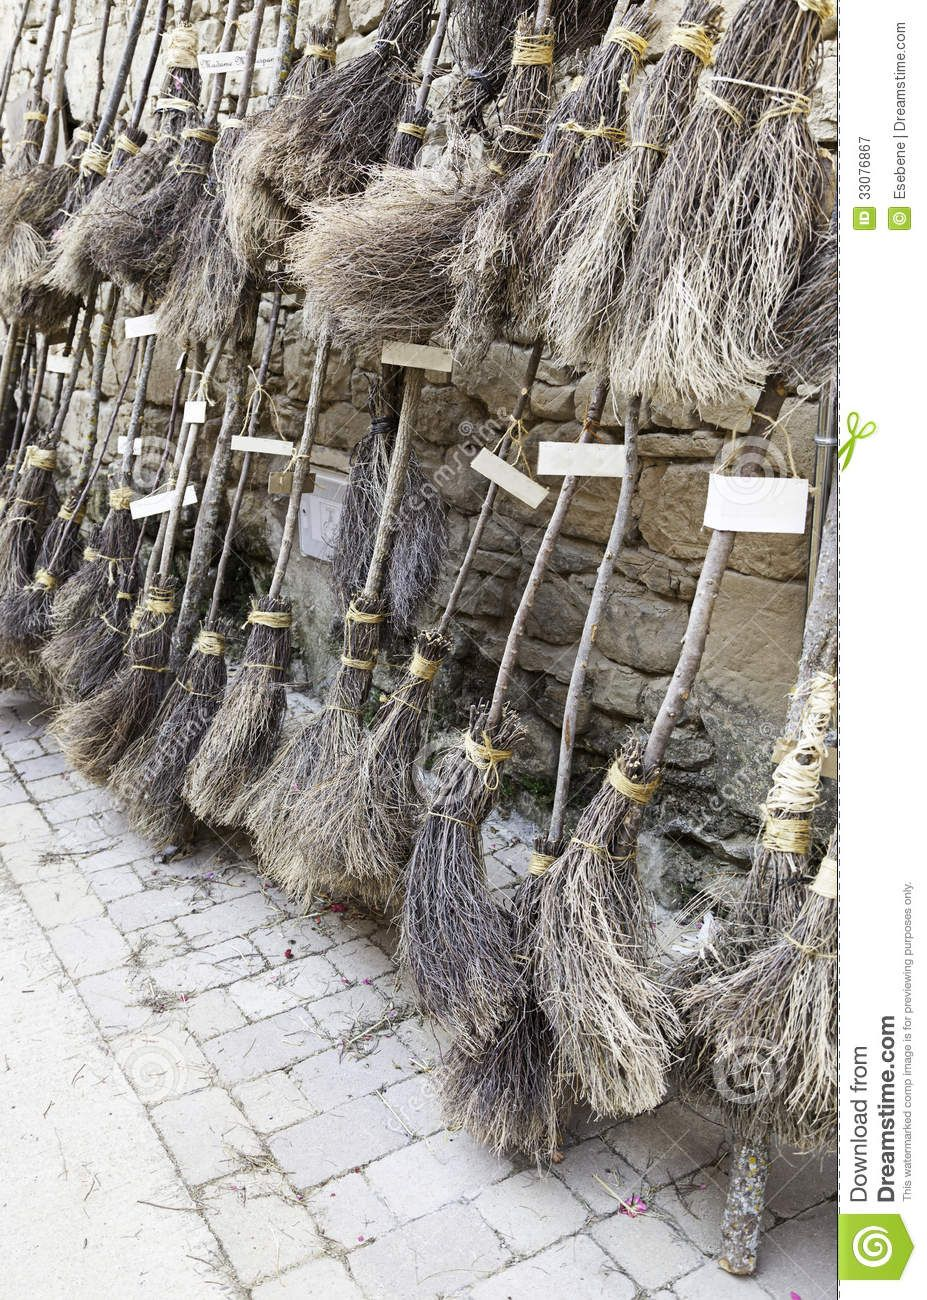 Witches brooms parking | Witch broom, Halloween witch, Brooms